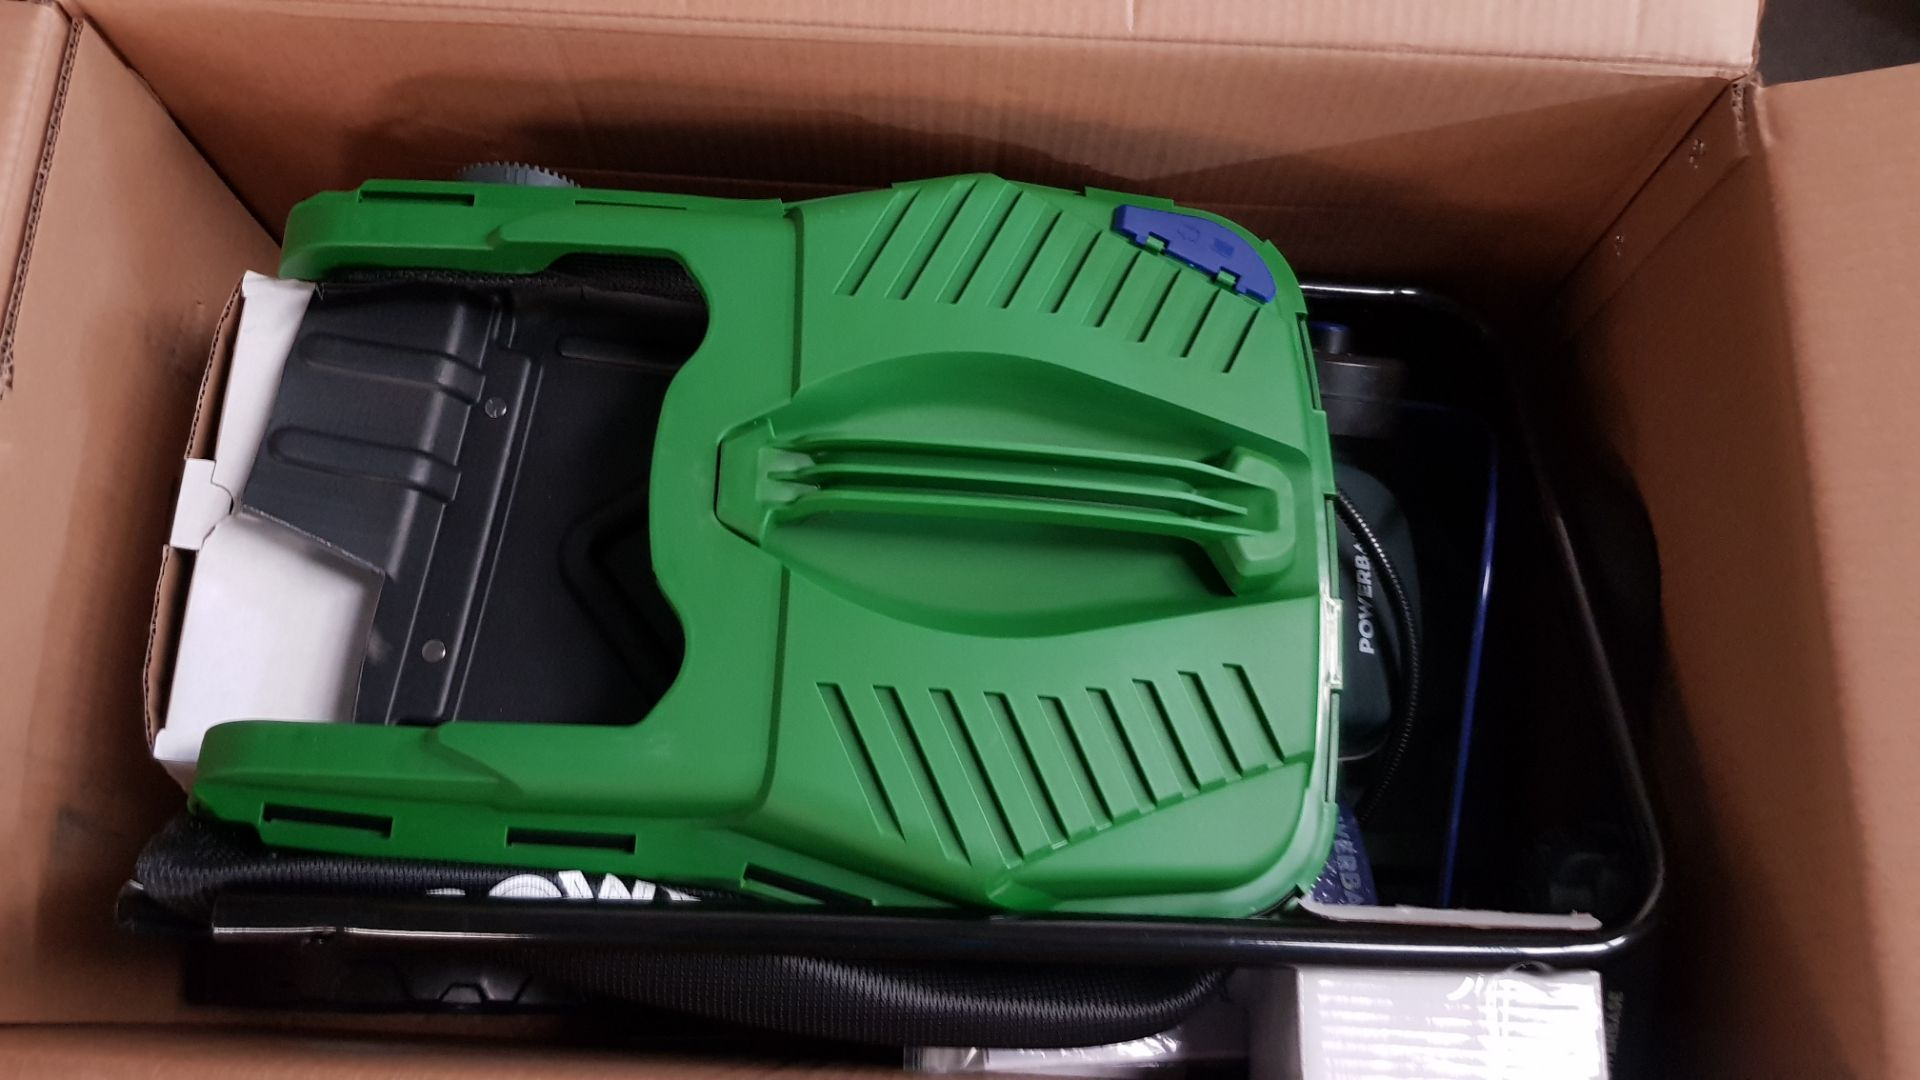 (P3) 1x Powerbase 37cm 40V Cordless Lawn Mower. RRP £199.00. Unit Appears Clean, As new & Unused. L - Image 4 of 6